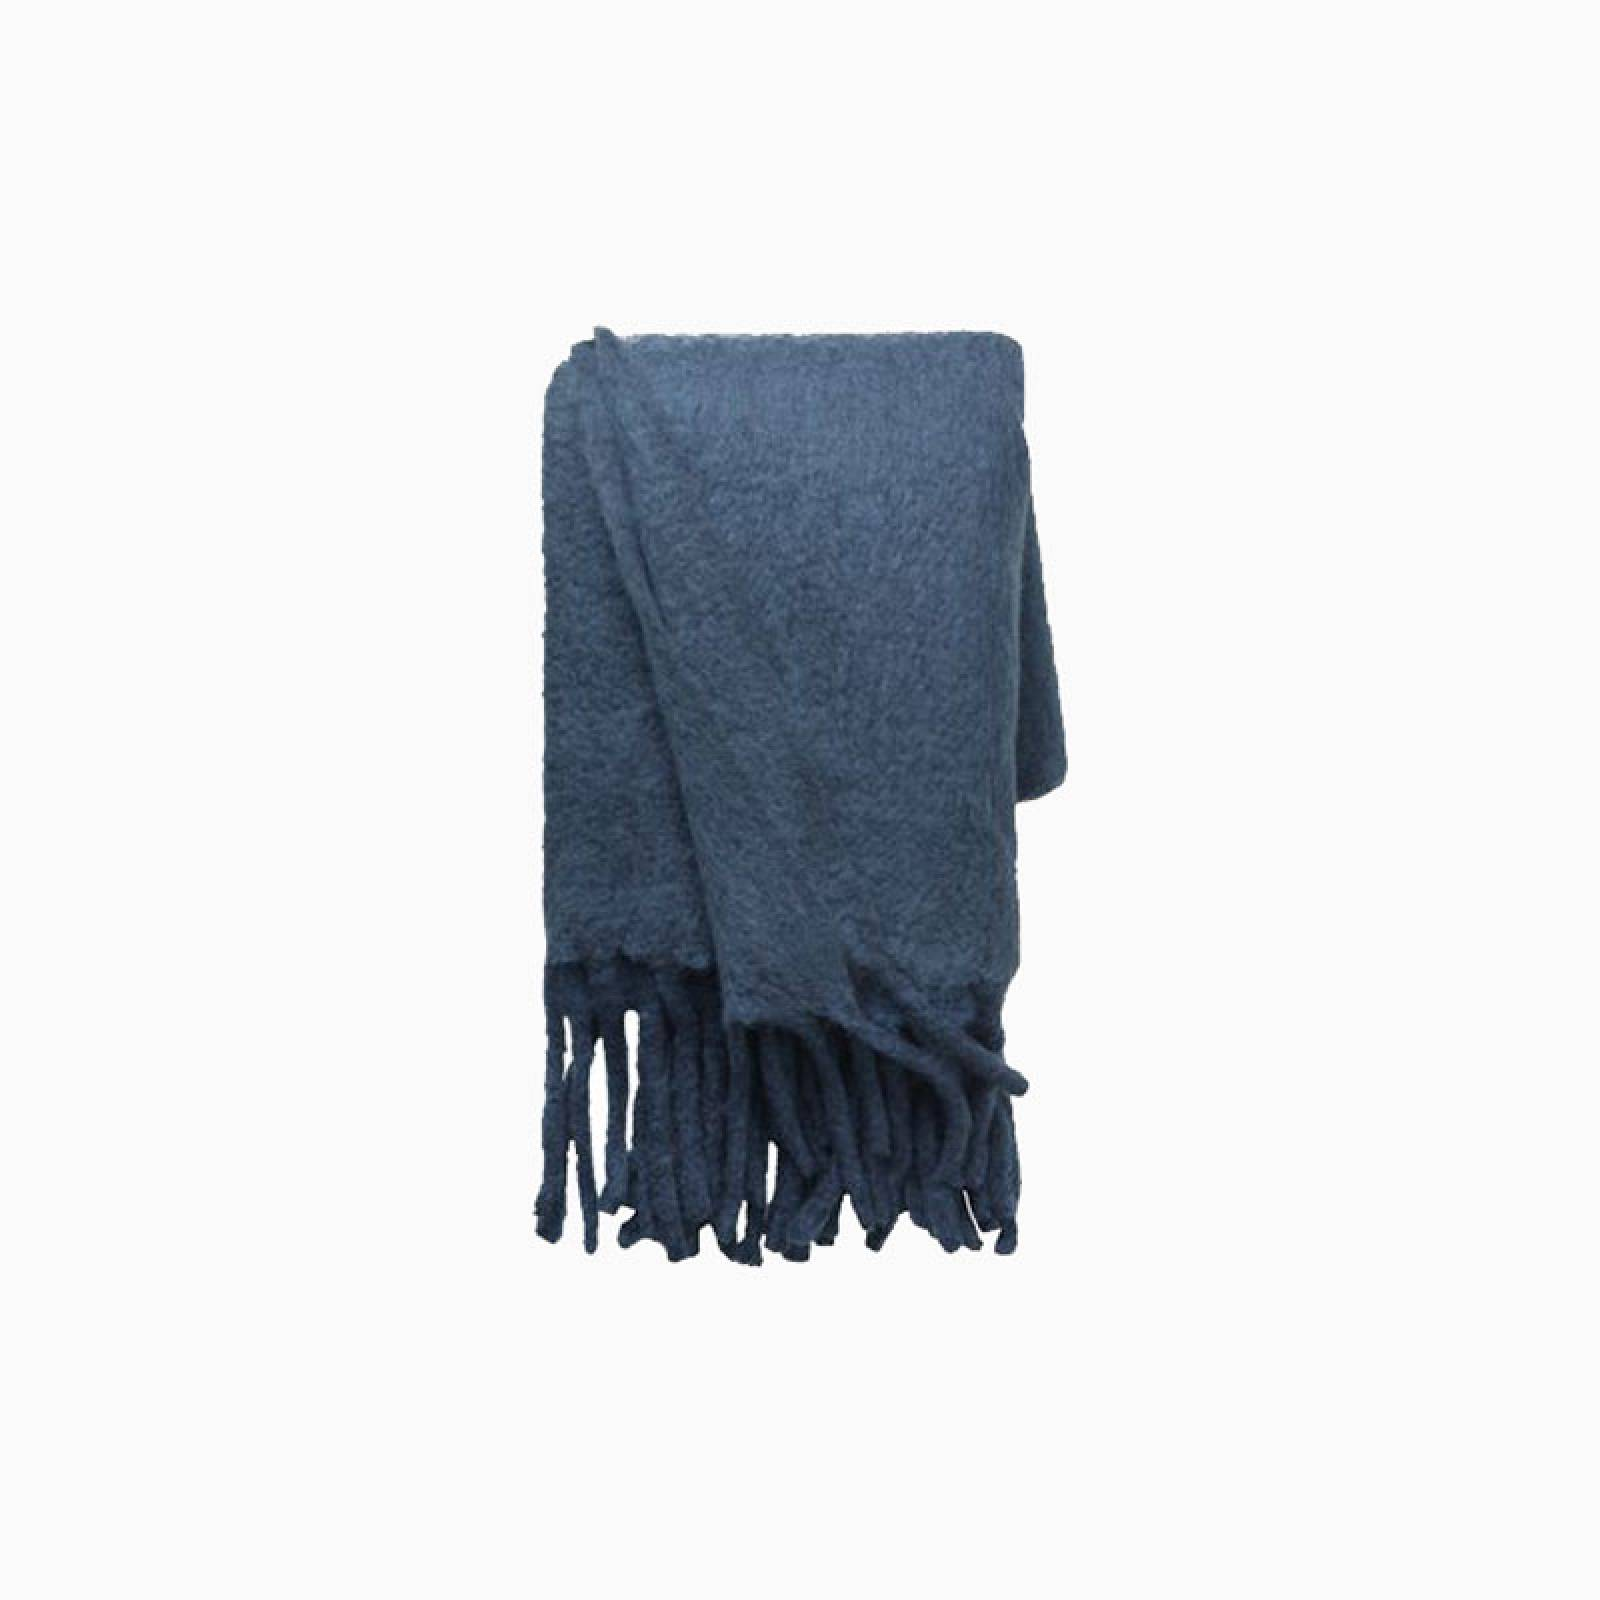 Wool Blanket With Fringing In Royal Blue